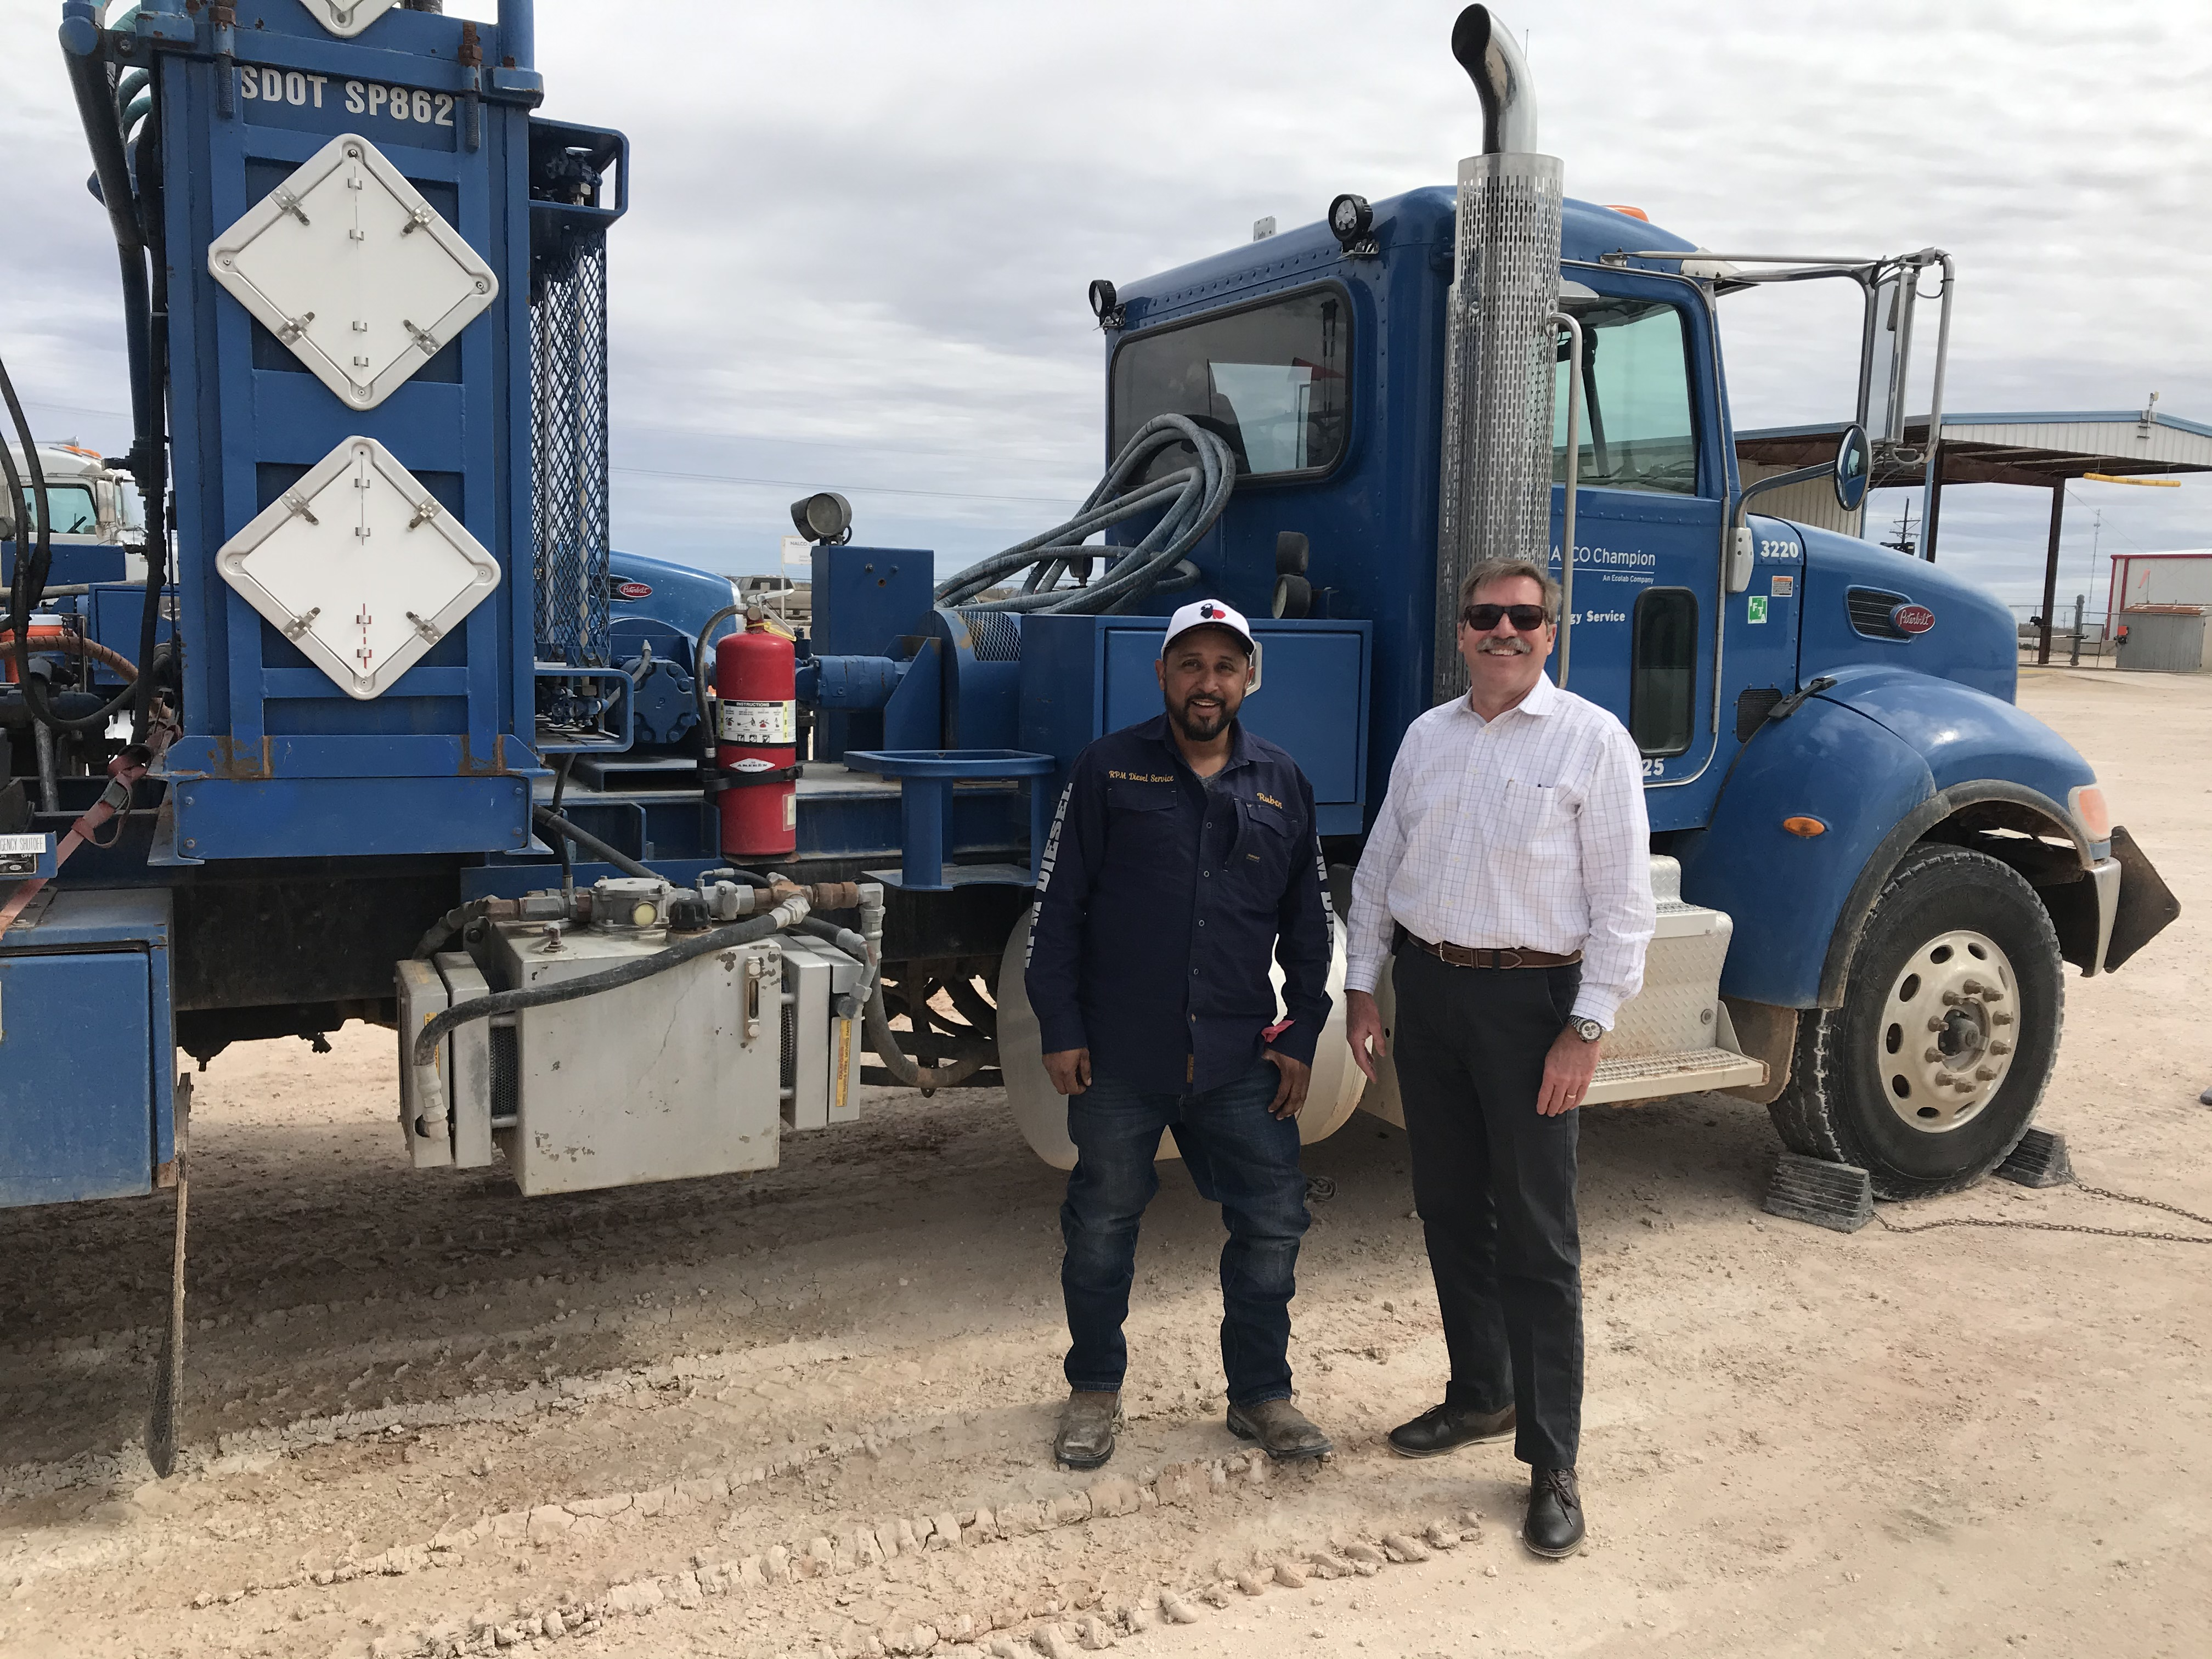 Two men standing in front of a blue semi truck.